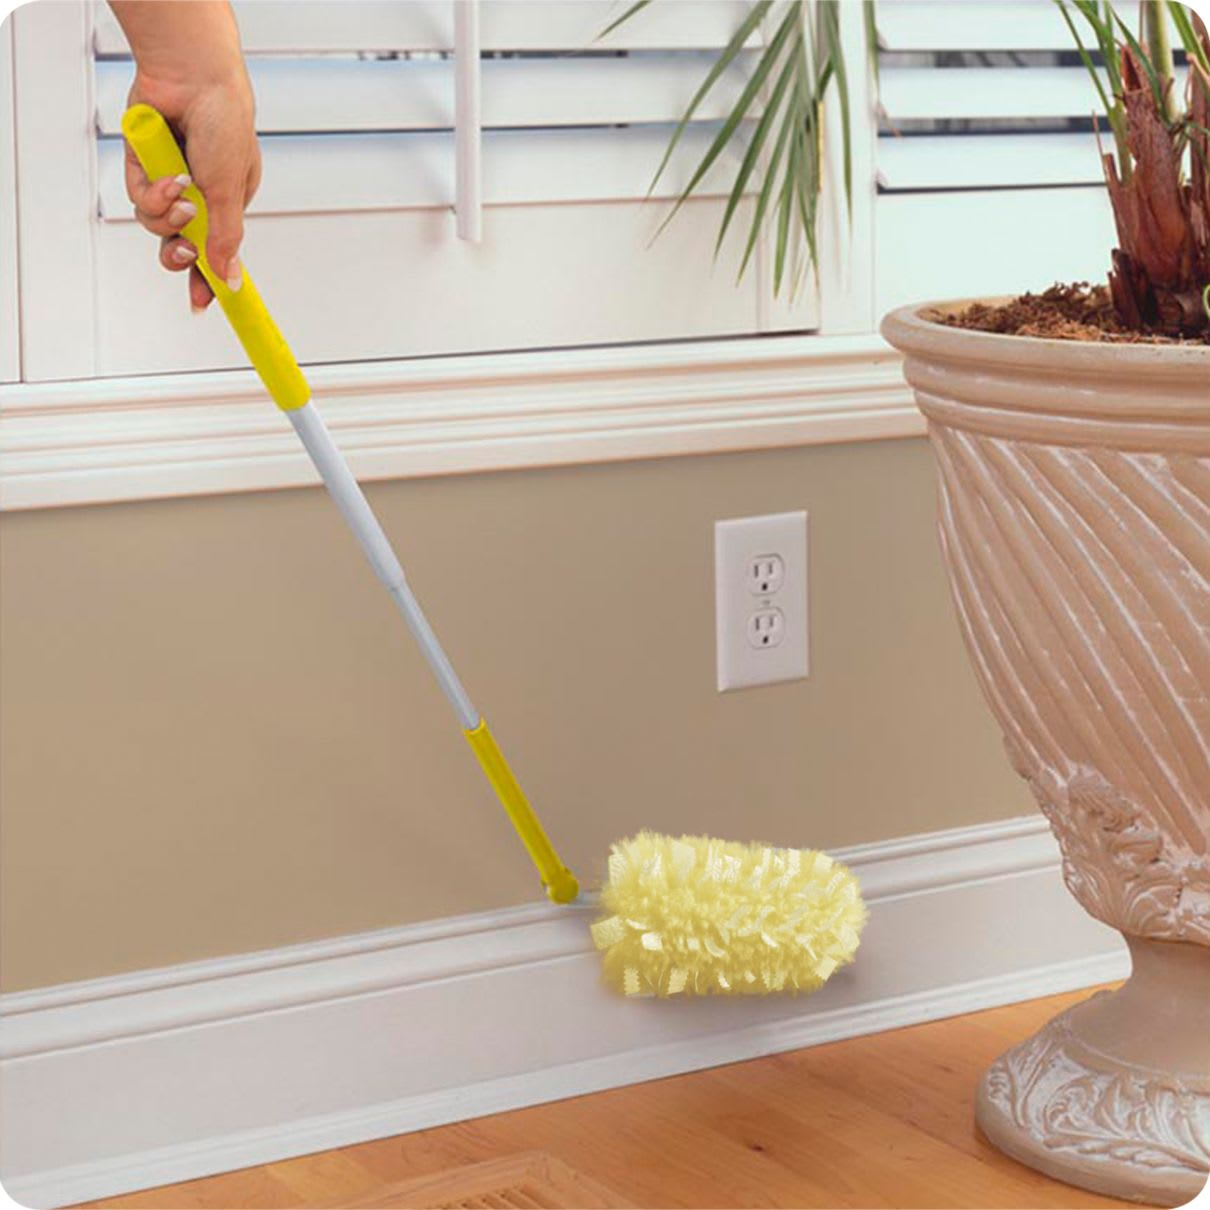 Swiffer Duster Heavy Duty Extender Starter Kit In Use